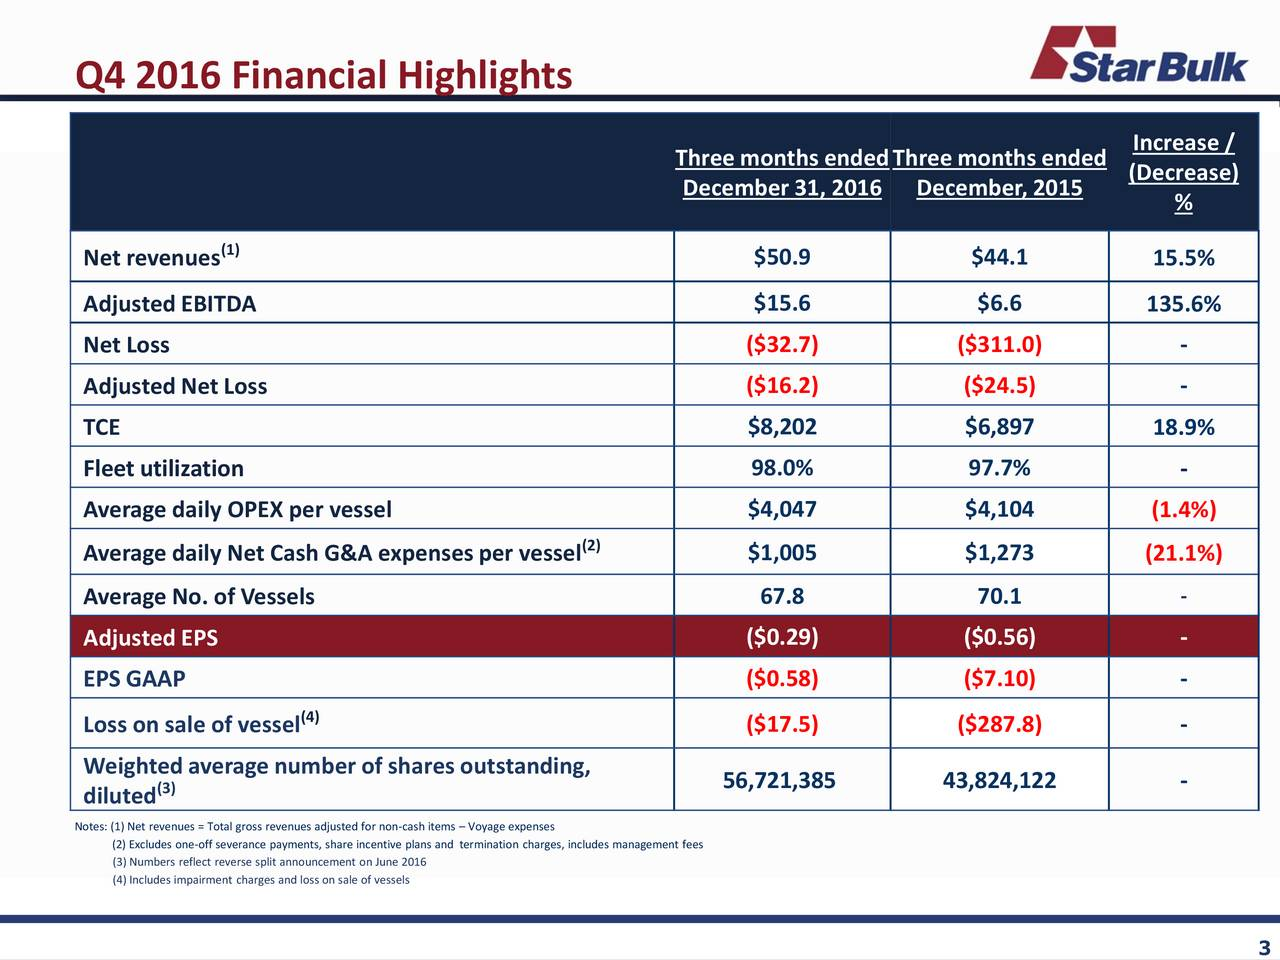 Increase / Threemonths endedThreemonths ended December 31, 2016 December, 2015 (Decrease) % Net revenues (1) $50.9 $44.1 15.5% AdjustedEBITDA $15.6 $6.6 135.6% Net Loss ($32.7) ($311.0) - AdjustedNet Loss ($16.2) ($24.5) - TCE $8,202 $6,897 18.9% Fleet utilization 98.0% 97.7% - Average daily OPEX per vessel $4,047 $4,104 (1.4%) Average daily Net Cash G&A expensesper vessel (2) $1,005 $1,273 (21.1%) Average No. of Vessels 67.8 70.1 - Adjusted EPS ($0.29) ($0.56) - EPS GAAP ($0.58) ($7.10) - (4) ($17.5) ($287.8) - Loss on sale of vessel Weightedaverage number of shares outstanding, diluted(3) 56,721,385 43,824,122 - Note(2) Excludes one-off severance payments, share incentive plans and termination charges, includes management fees (3) Numbers reflect reverse split announcement on June 2016 (4) Includes impairment charges and loss on sale of vessels